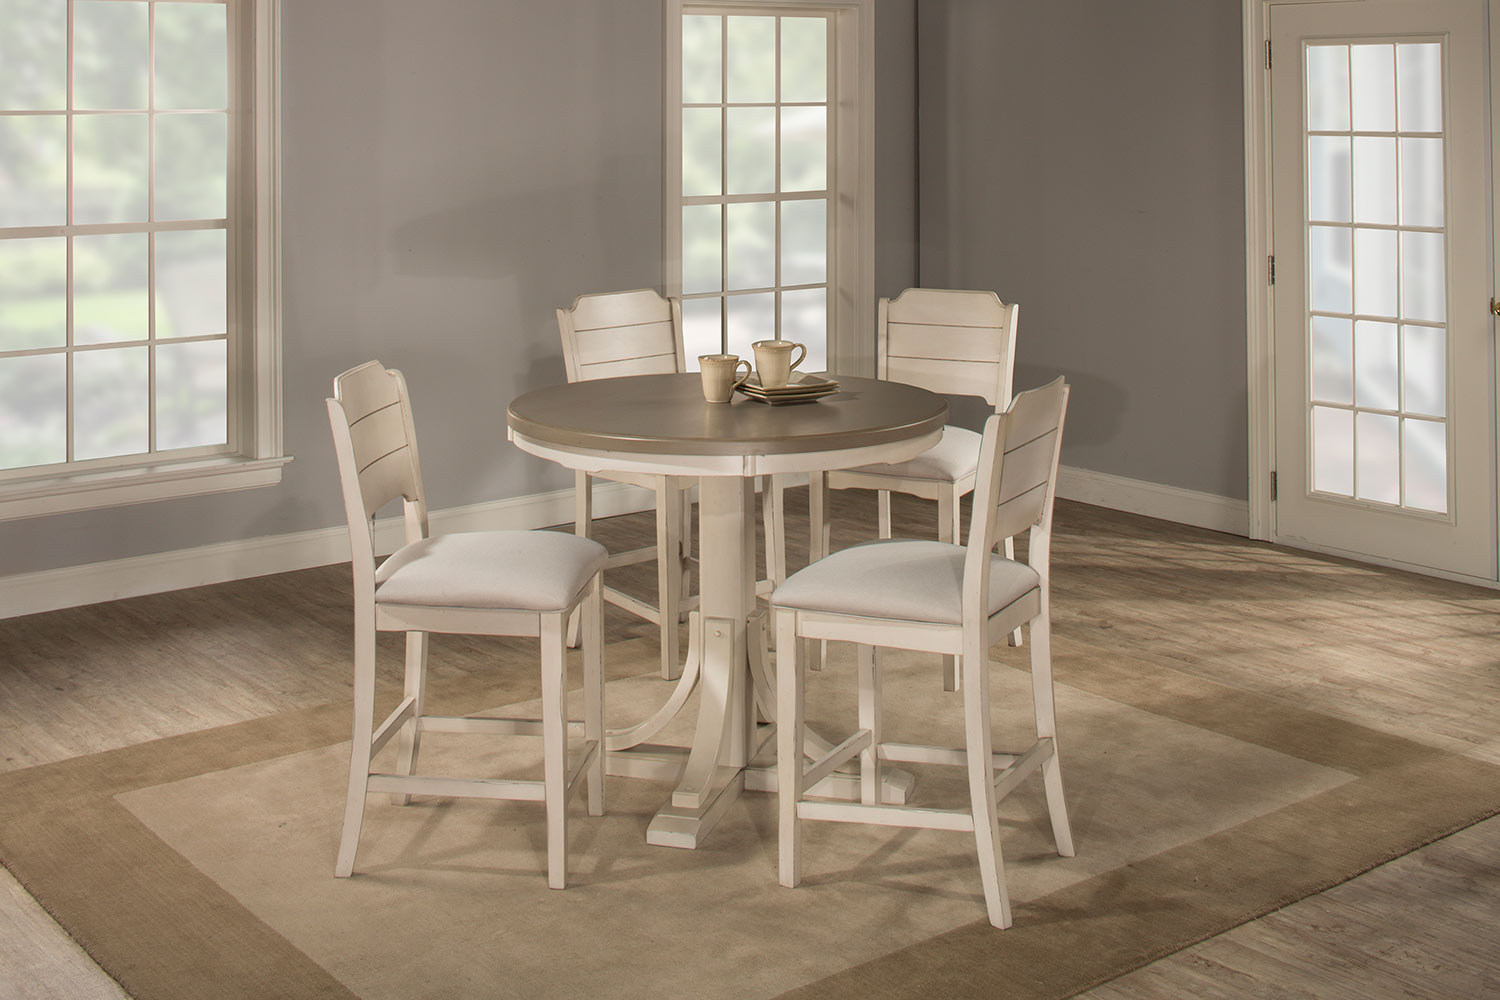 Hillsdale Clarion Round Counter Height Dining Set - Gray/White